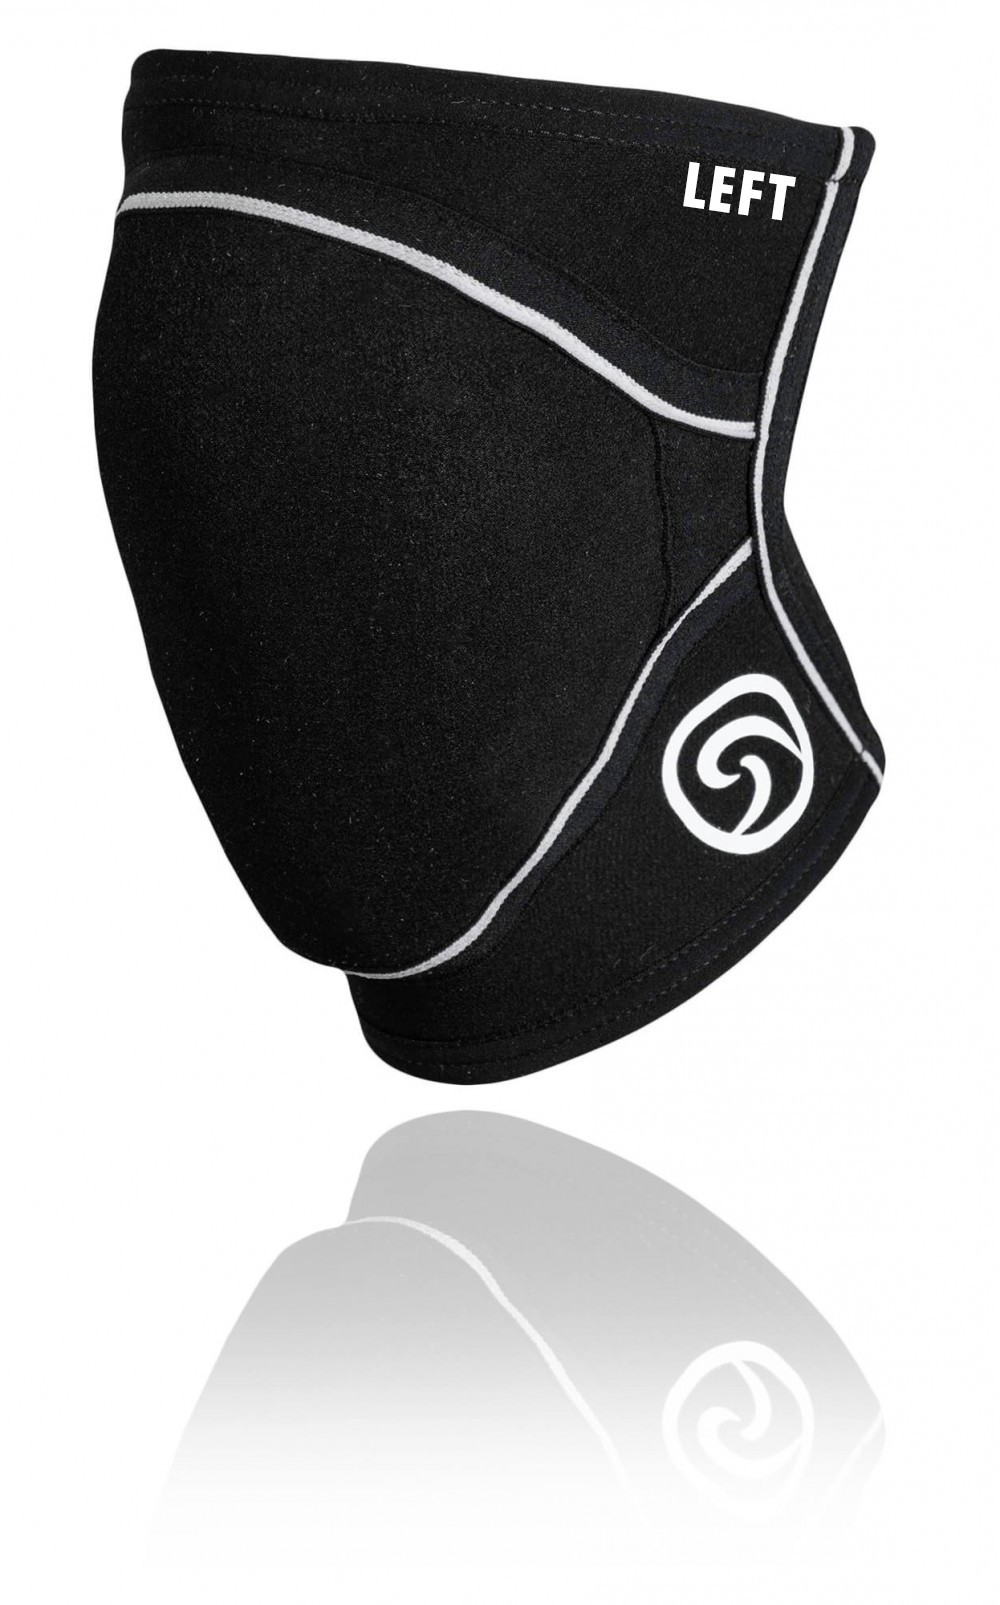 PRN Knee Pad Left - Black - XL